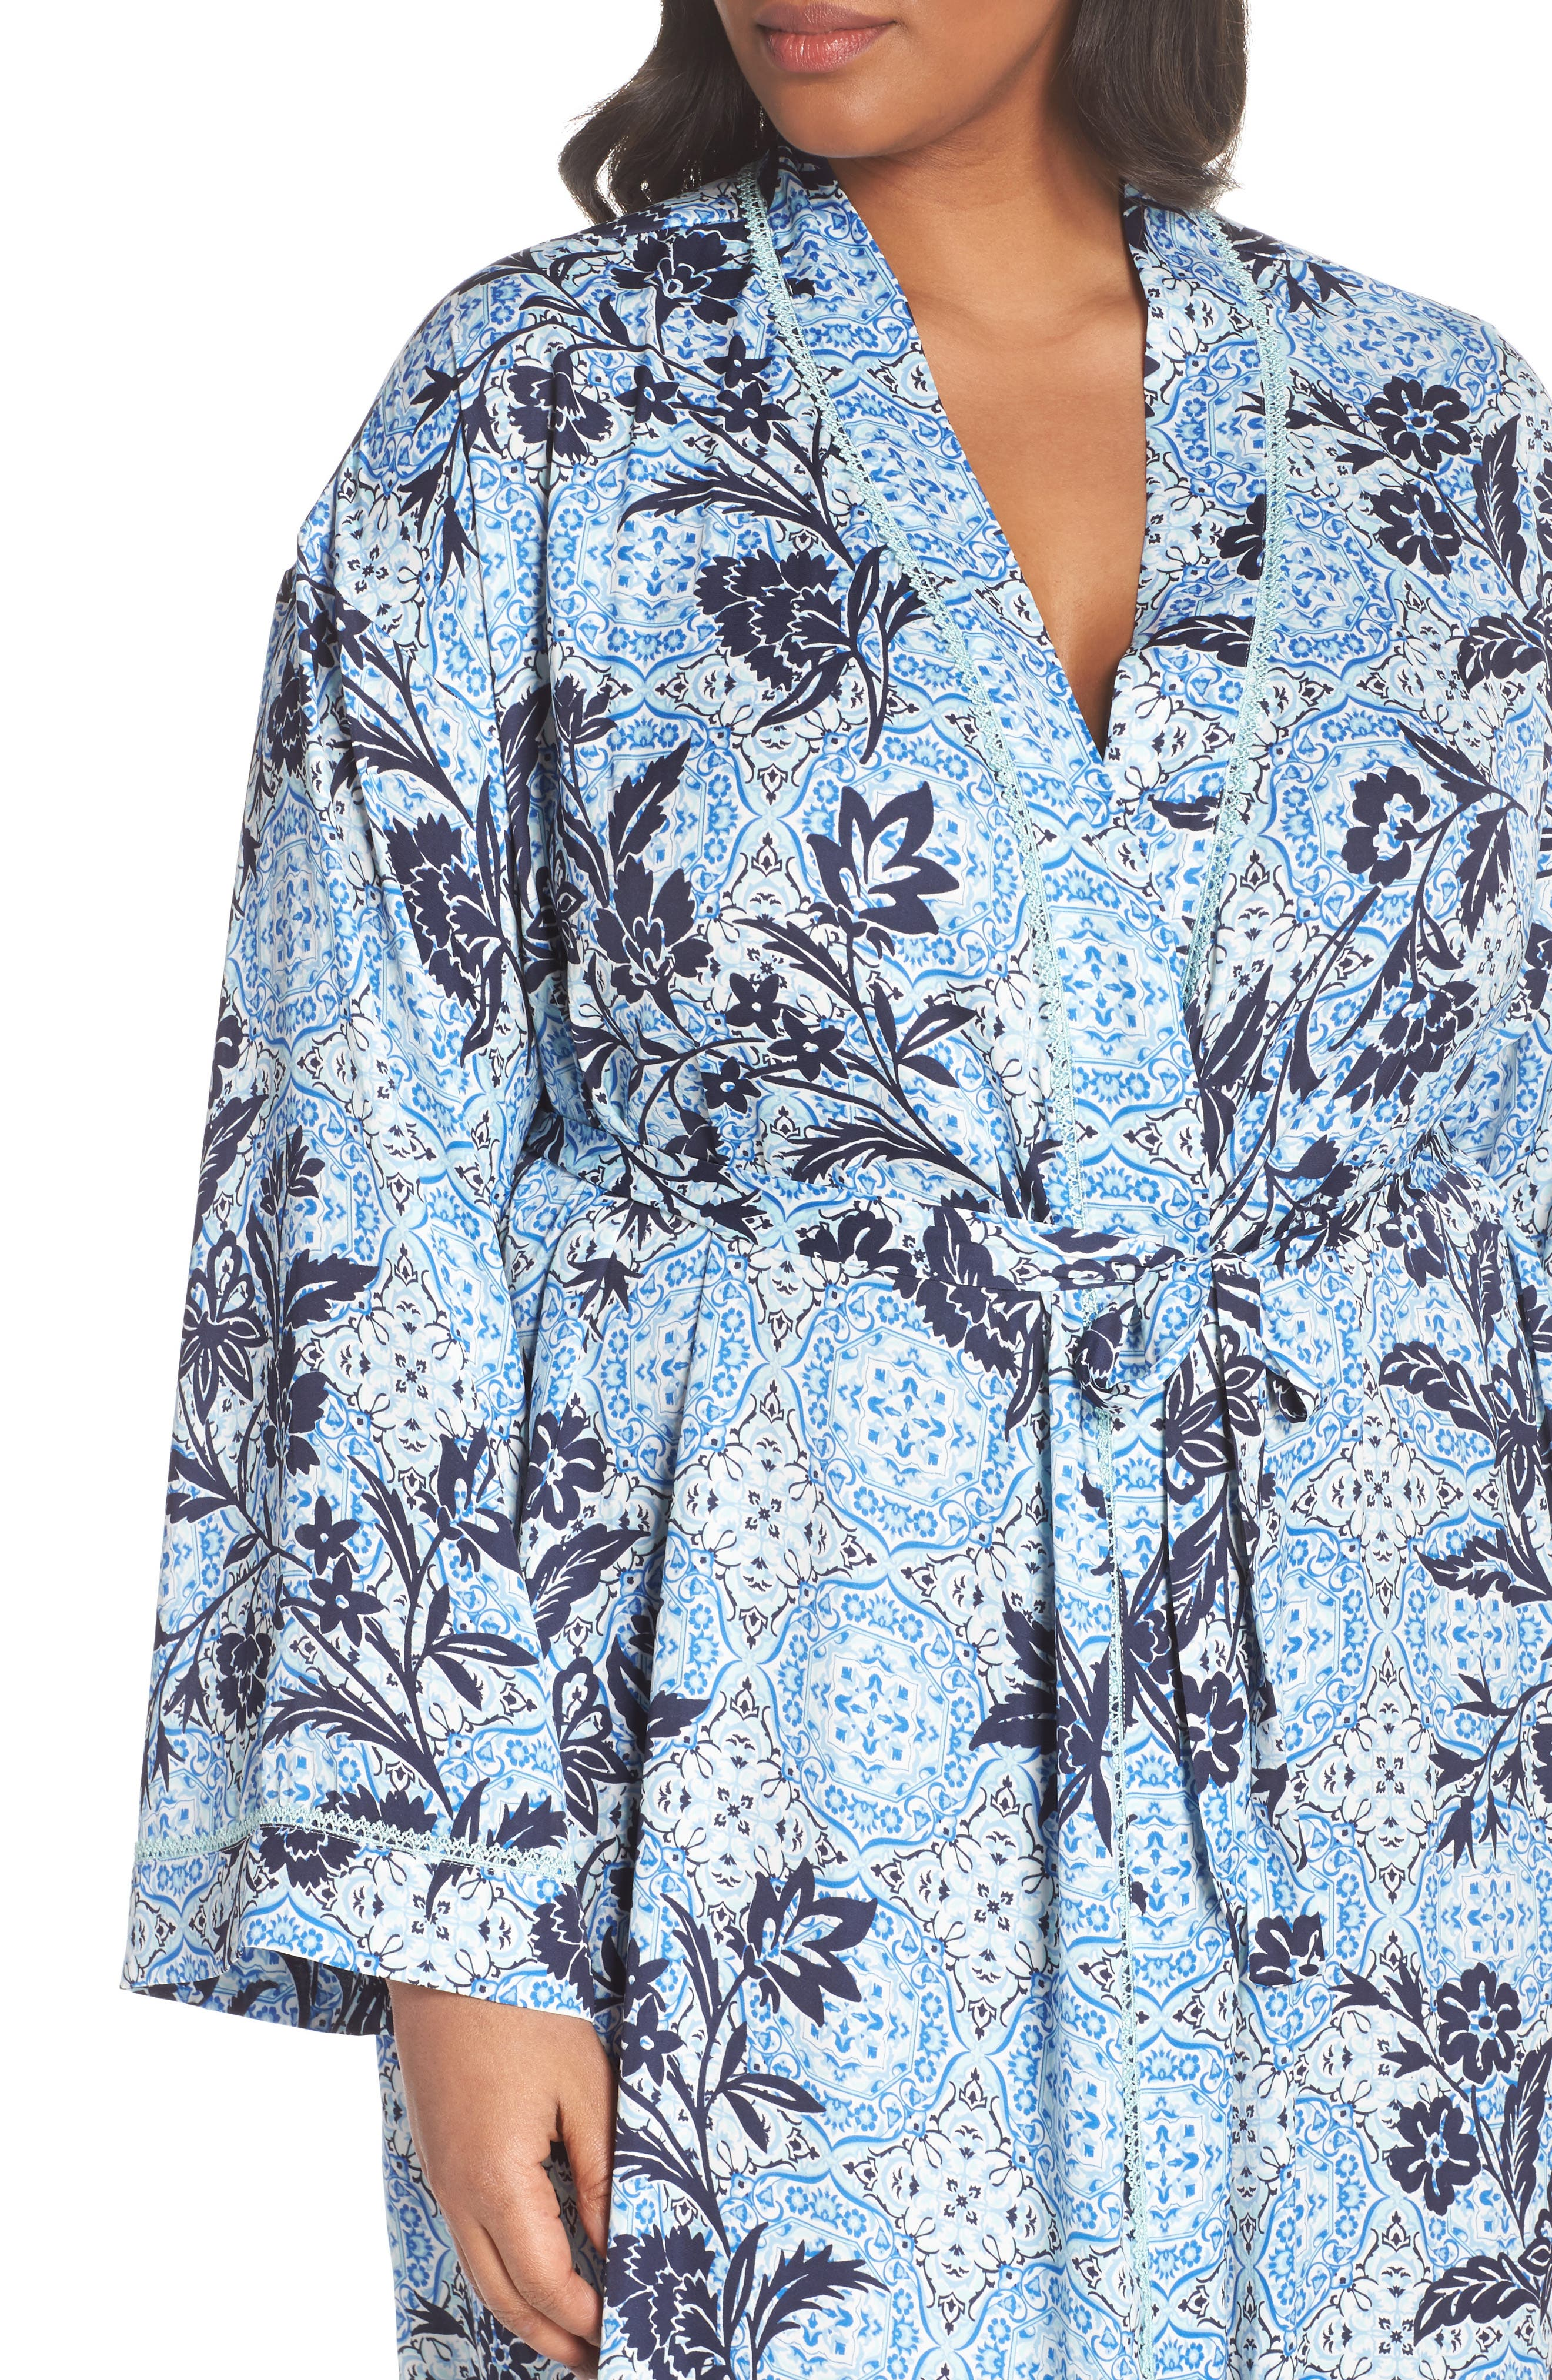 Sweet Dreams Satin Robe,                             Alternate thumbnail 4, color,                             Blue Palace Tile Floral